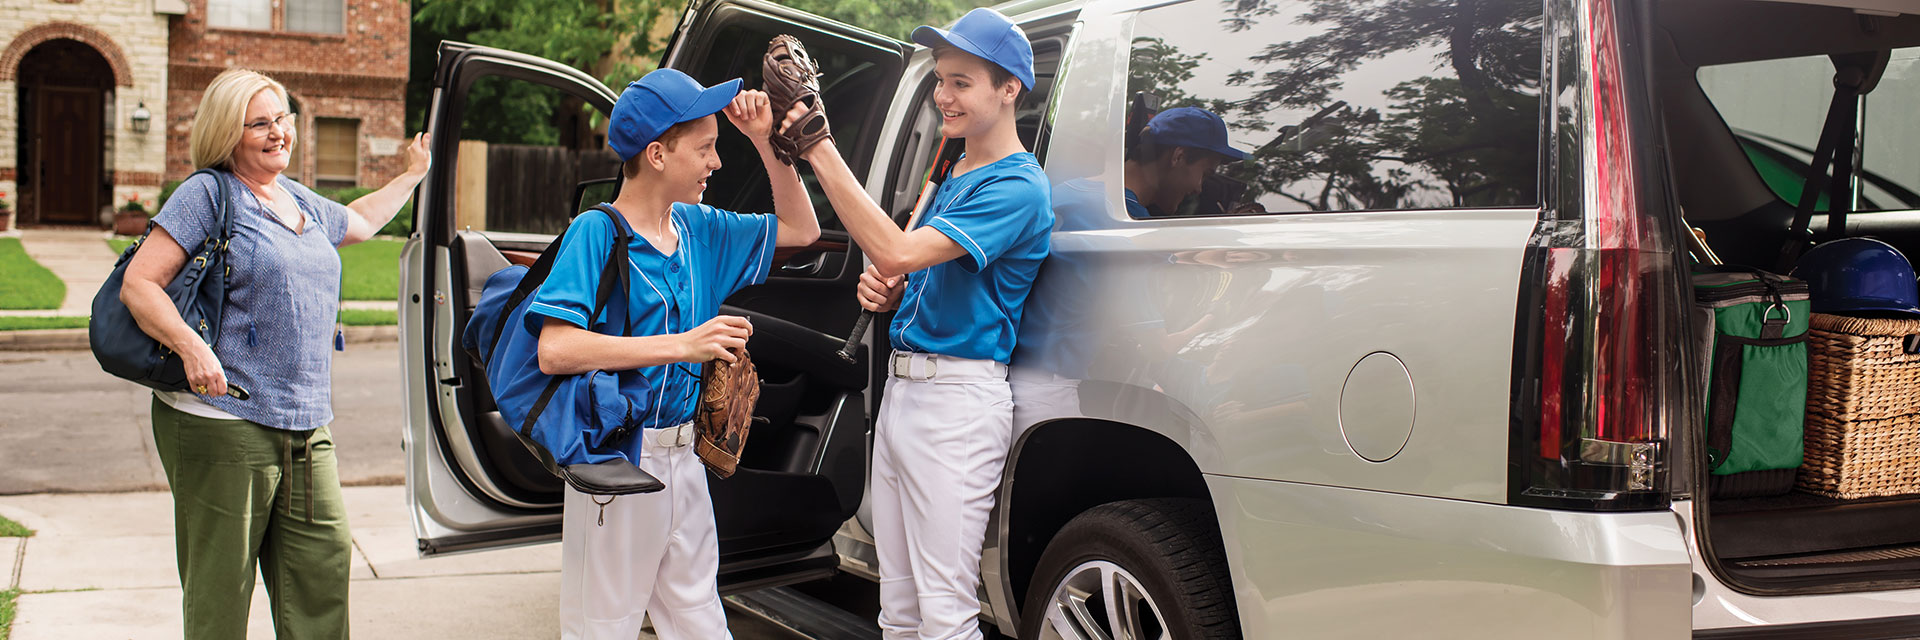 Mom taking sons to baseball game